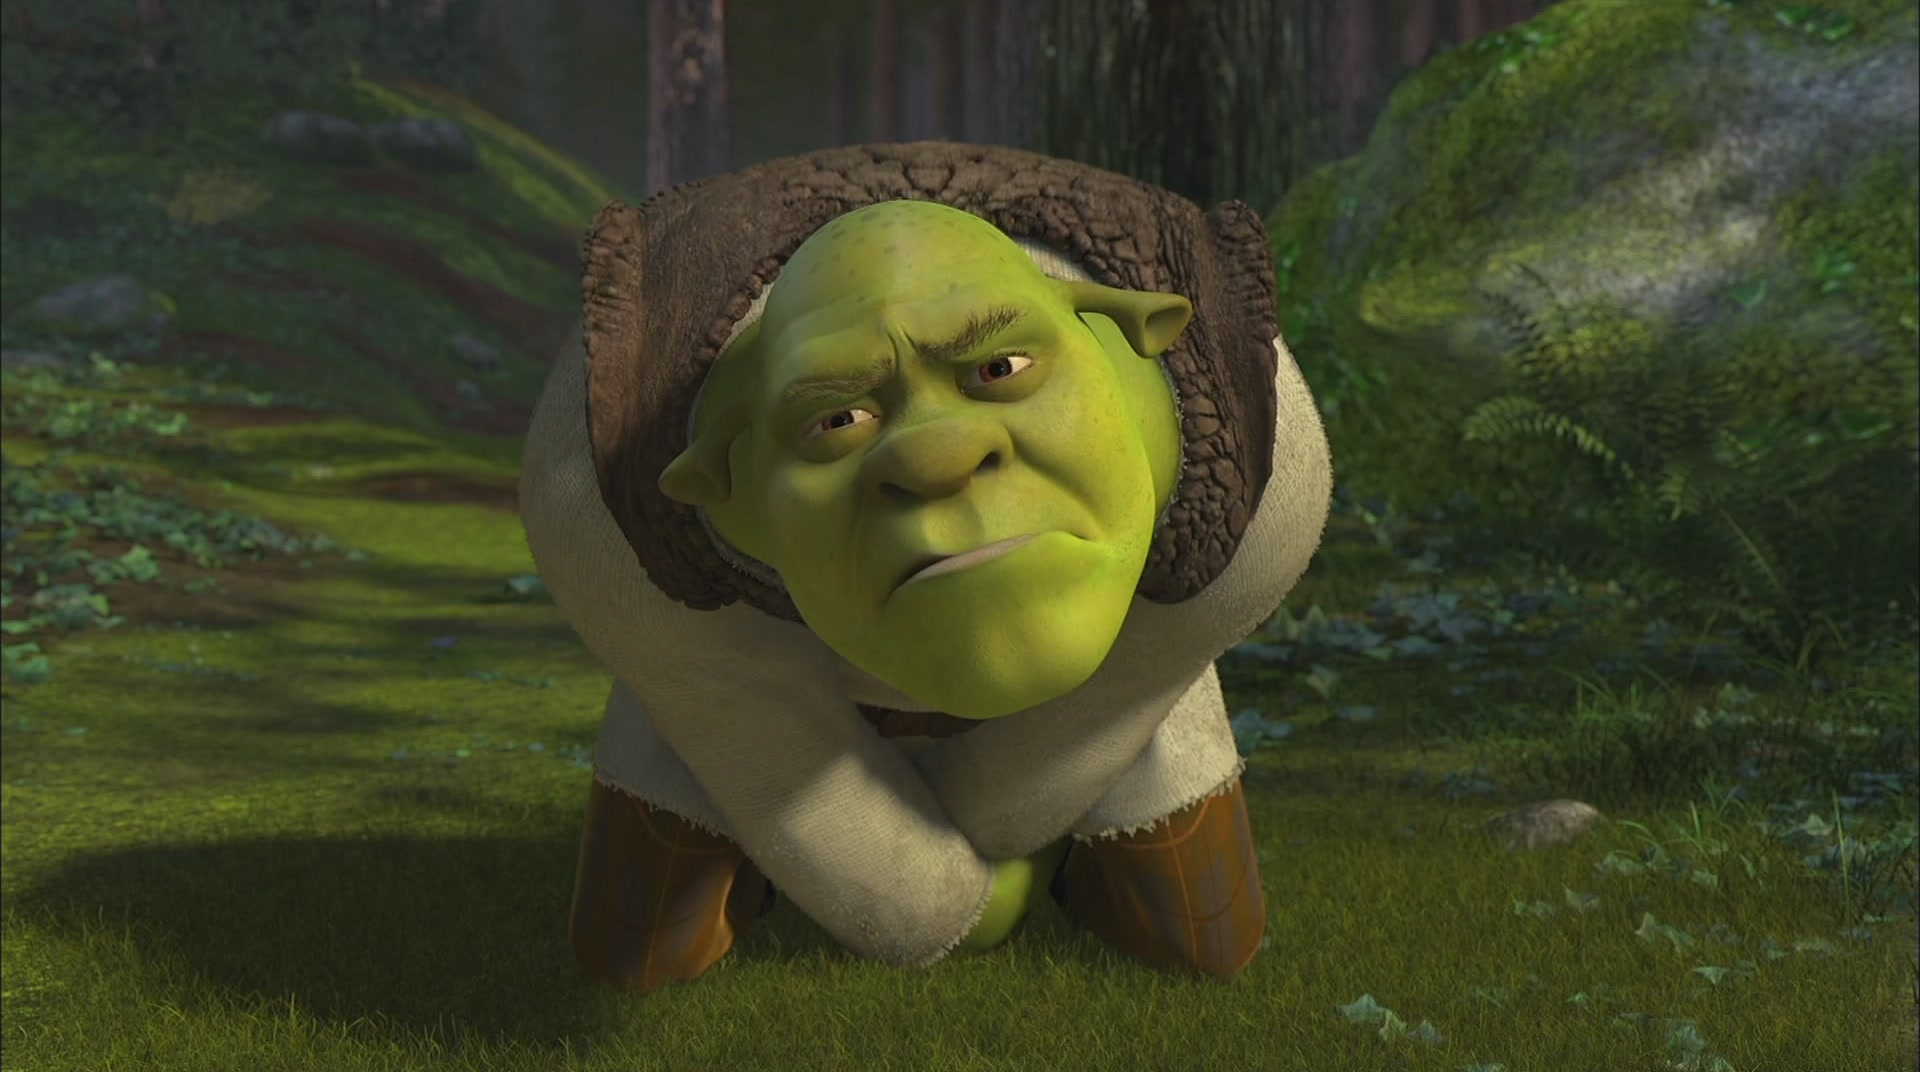 Image Shrek Gonads Jpg Wikishrek Fandom Powered By Wikia